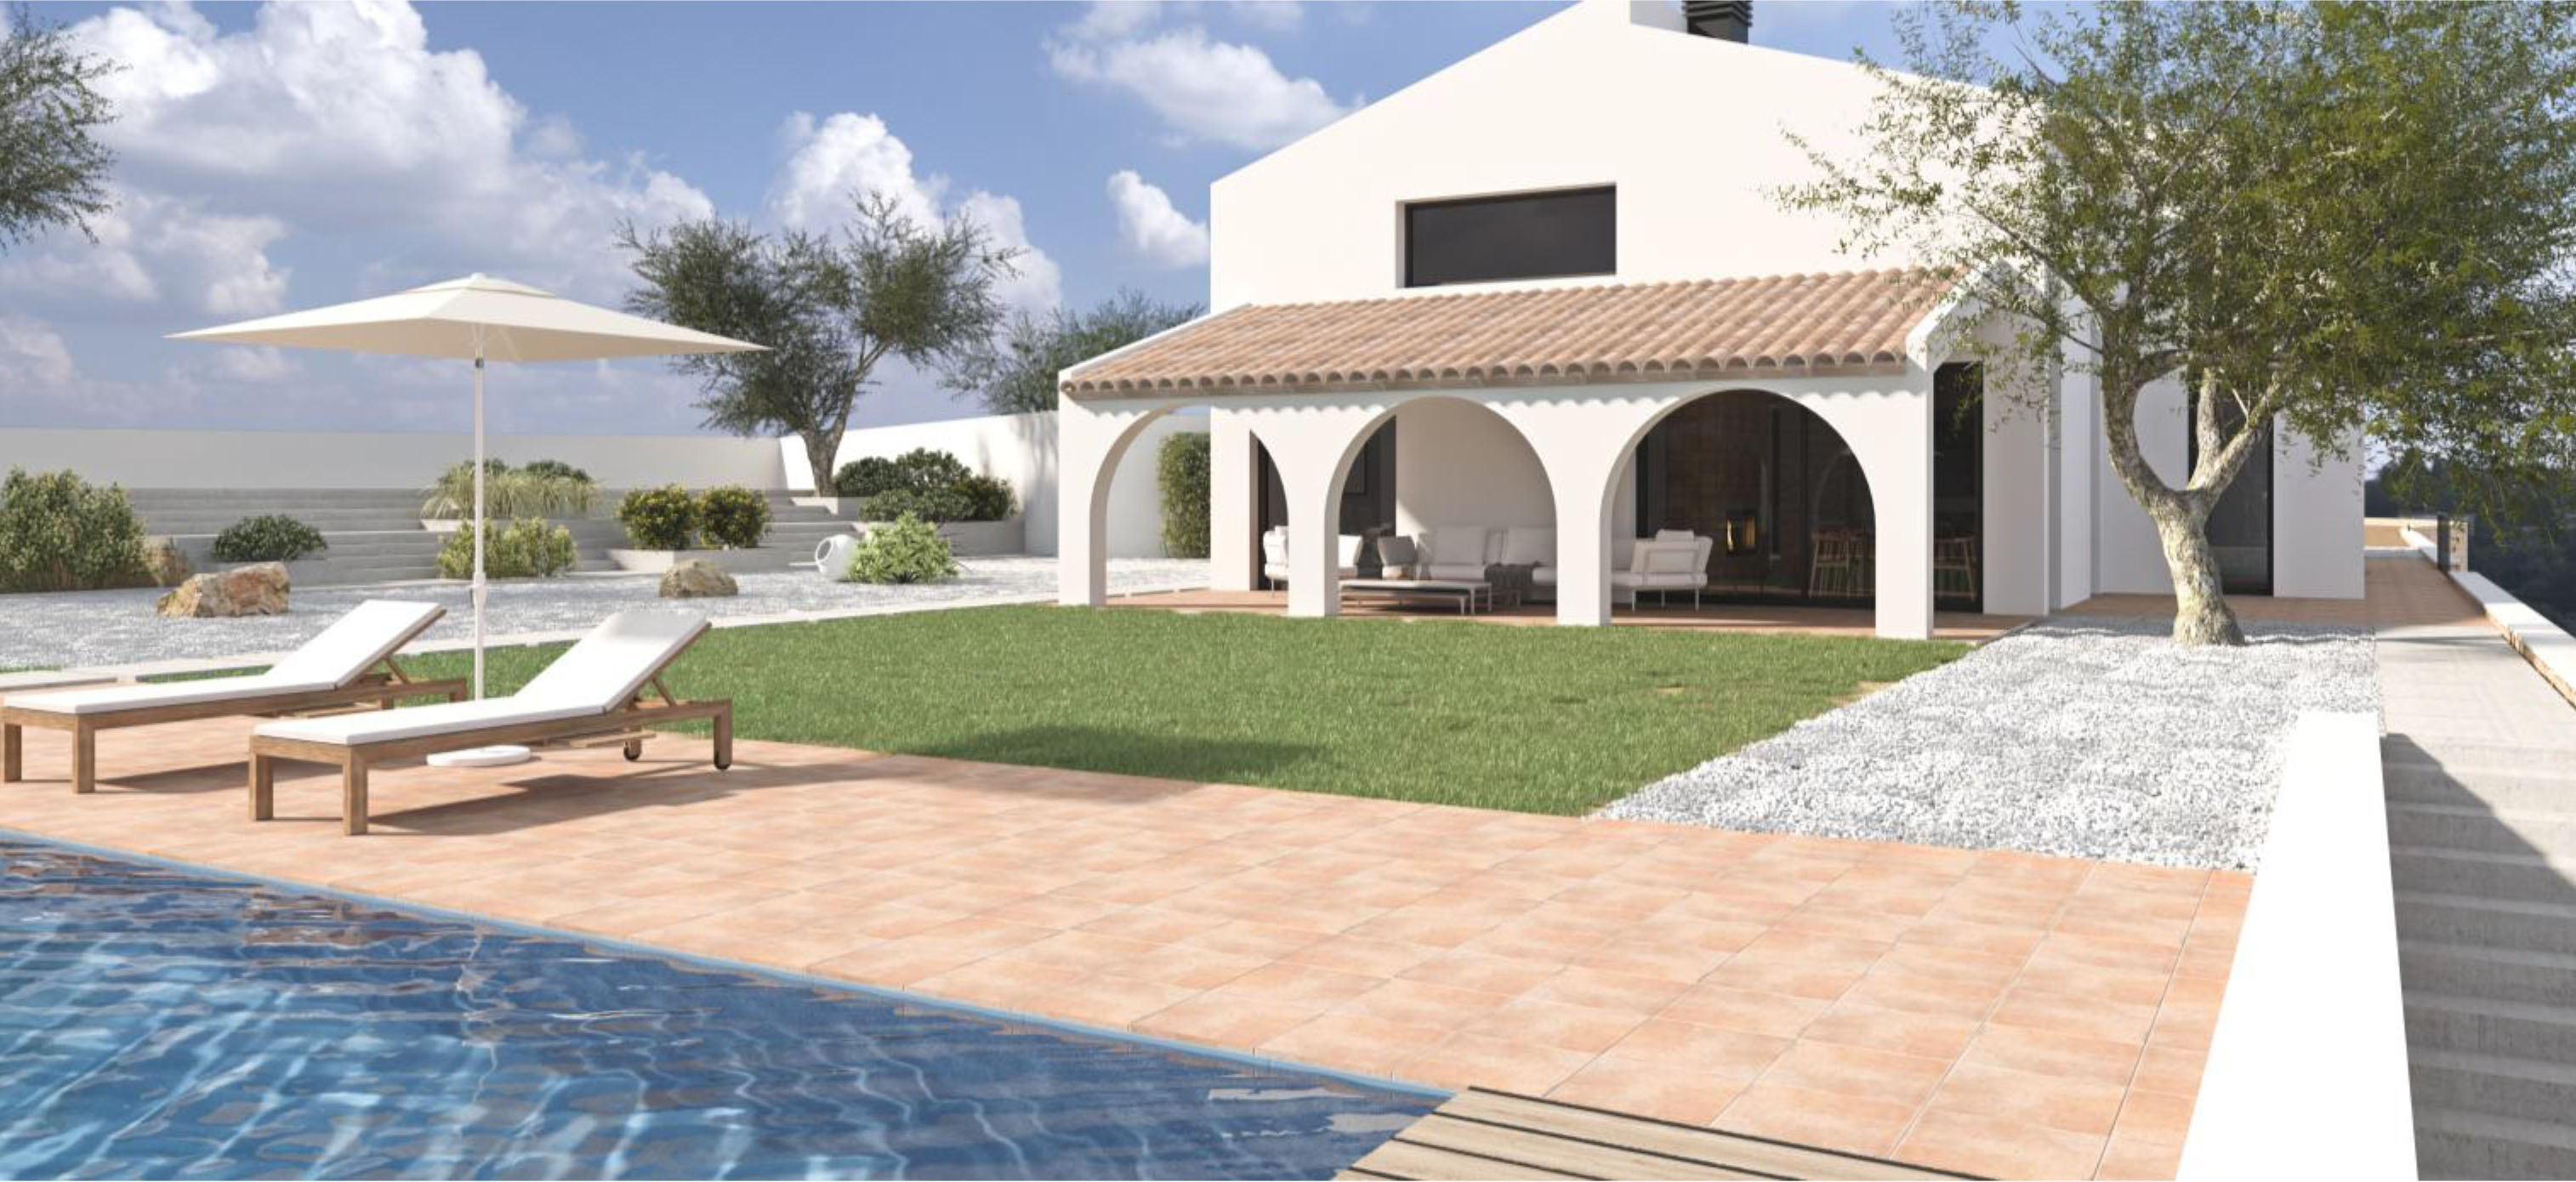 rural-property en moraira ·  1470000€